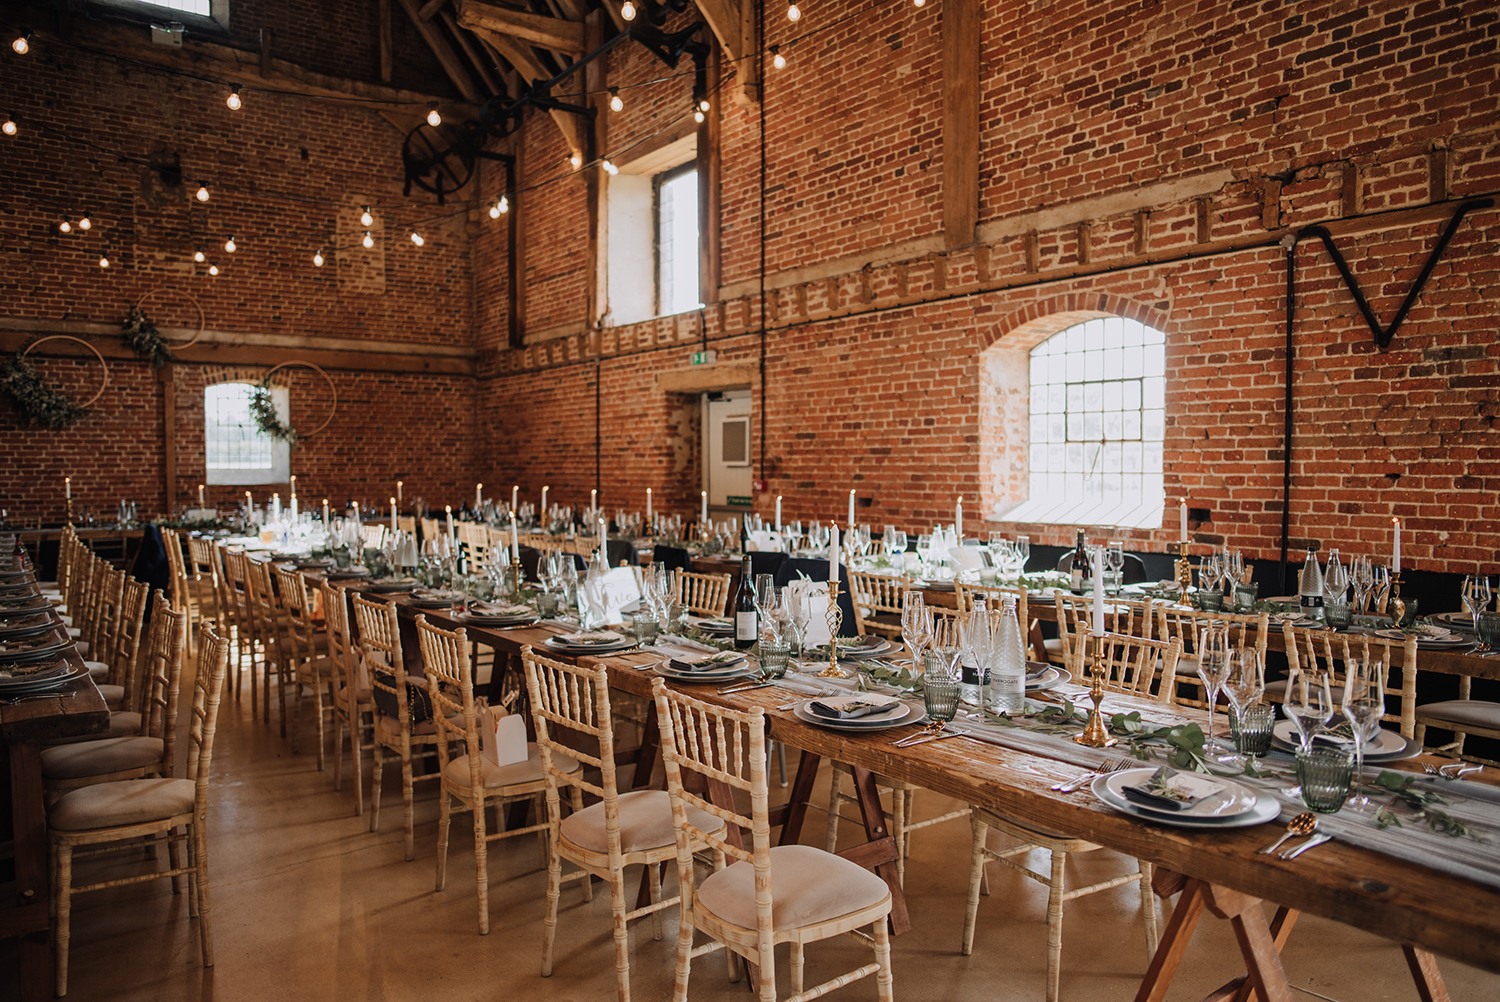 norfolk_barn_wedding_venues_14